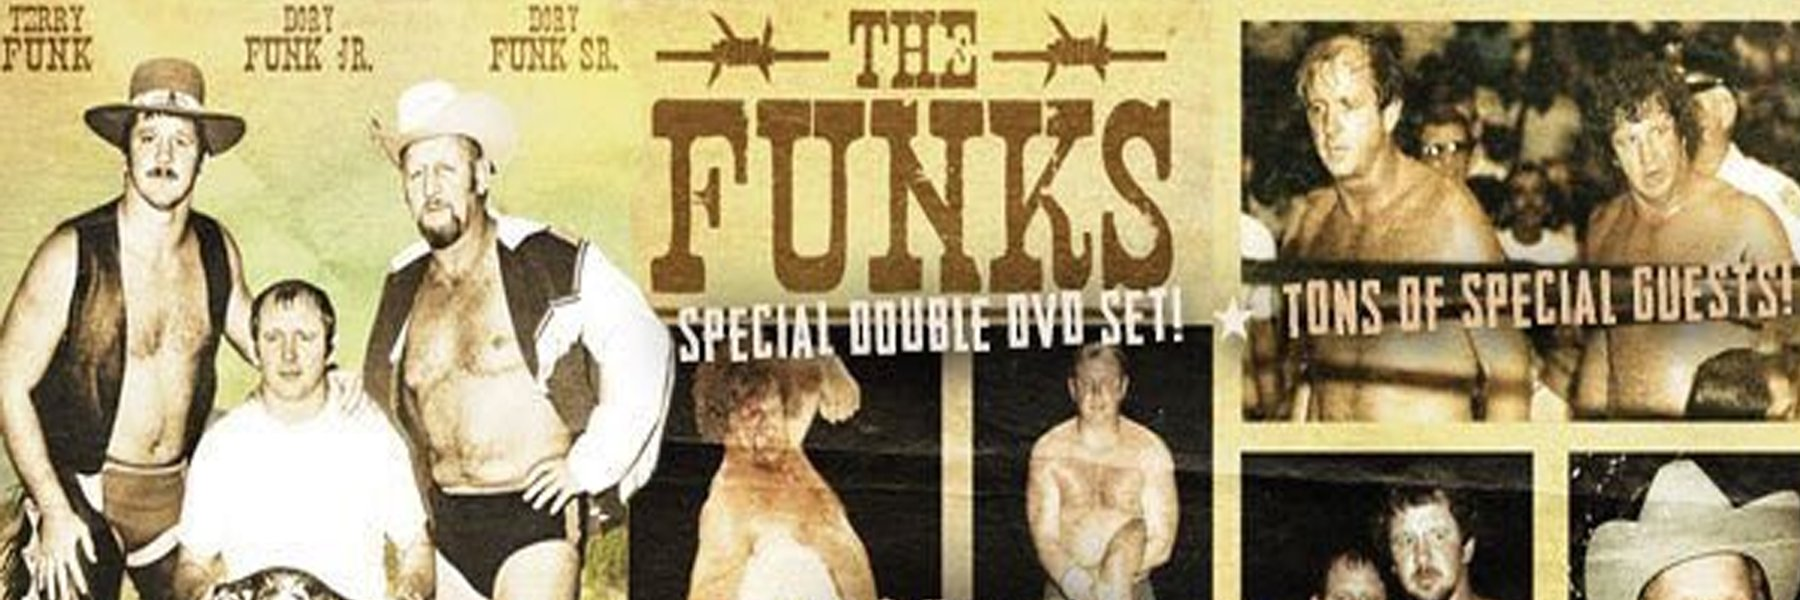 A+ Wrestling Documentary on the FUNKS! Special Interviews & Rare Footage